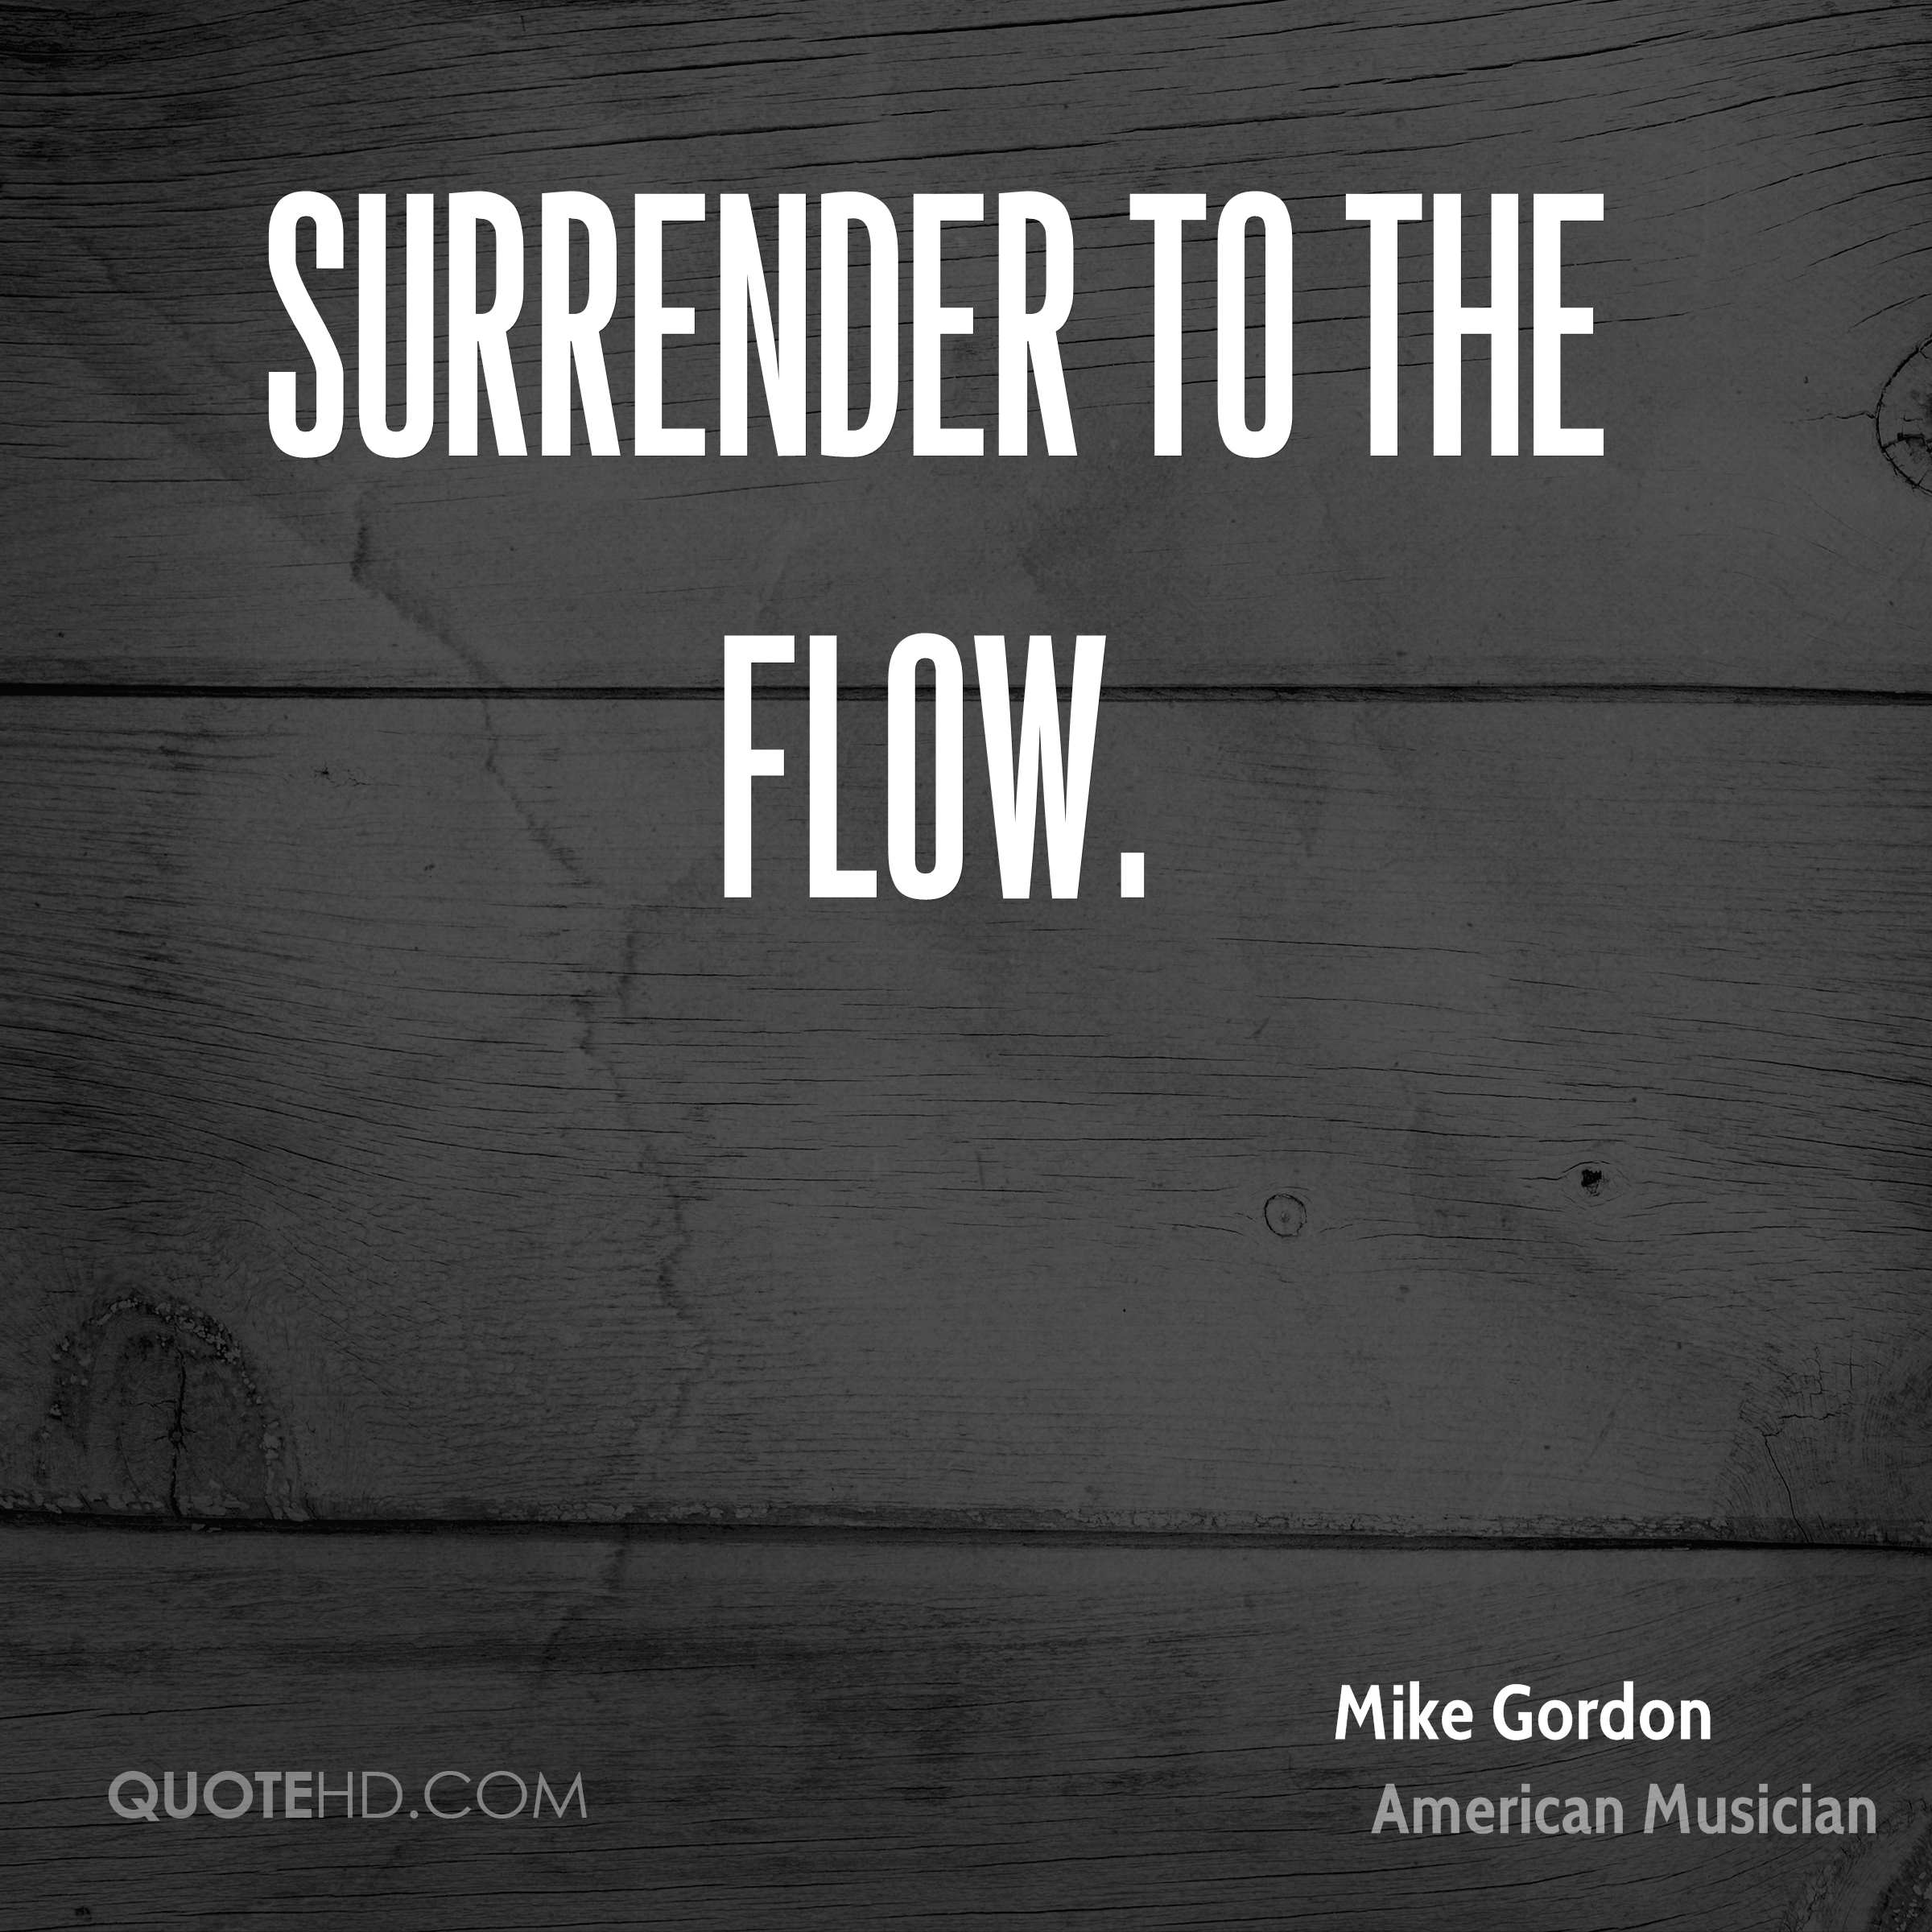 Surrender to the flow.